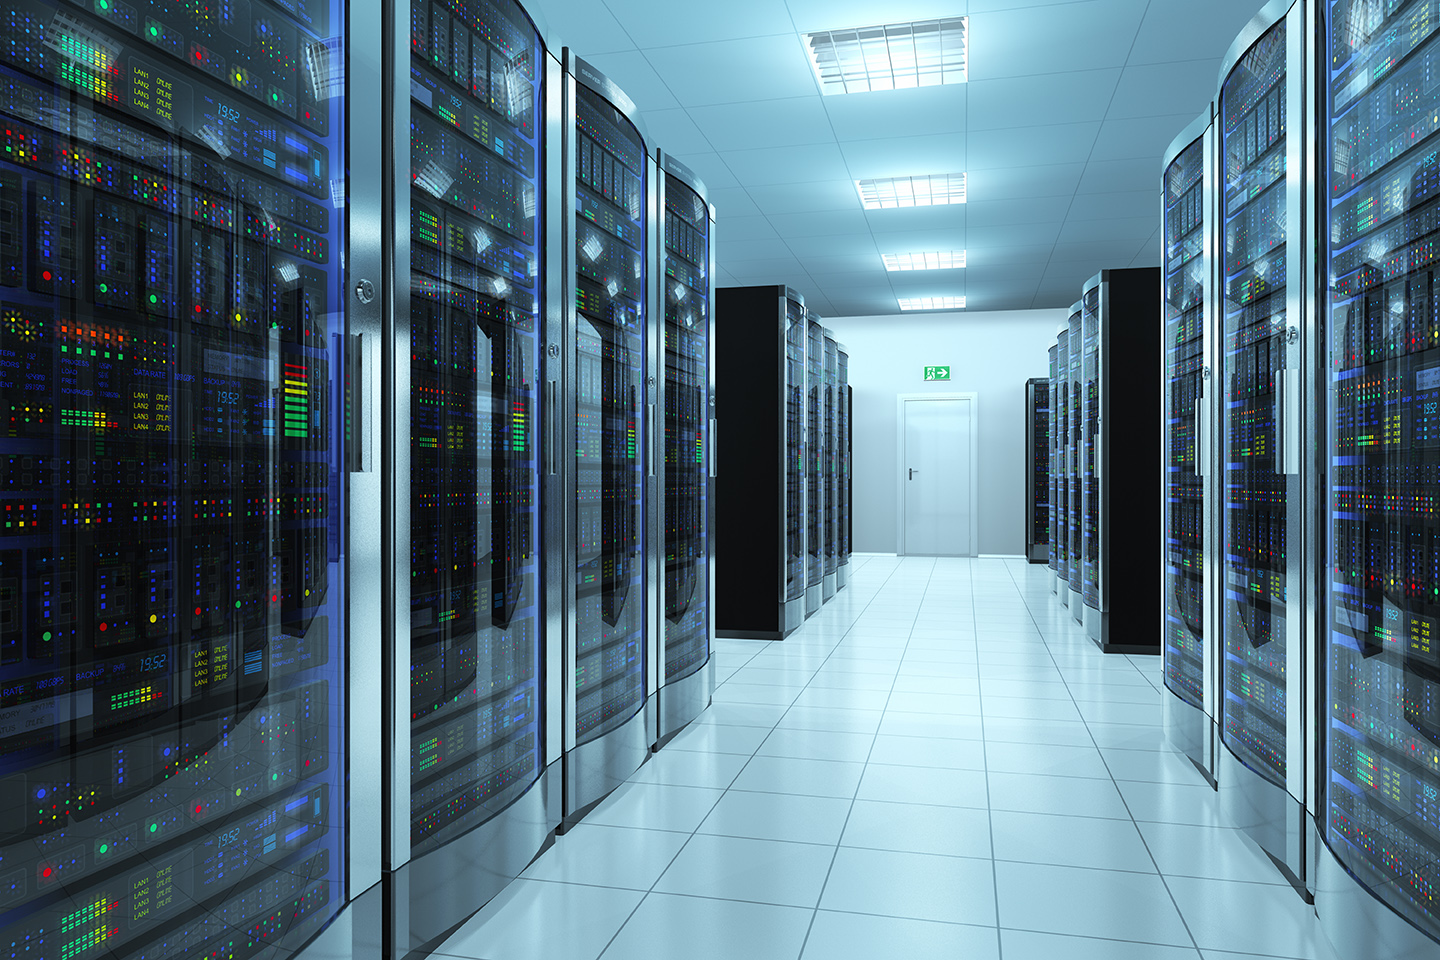 Modern network and telecommunication technology computer concept: server room in datacenter